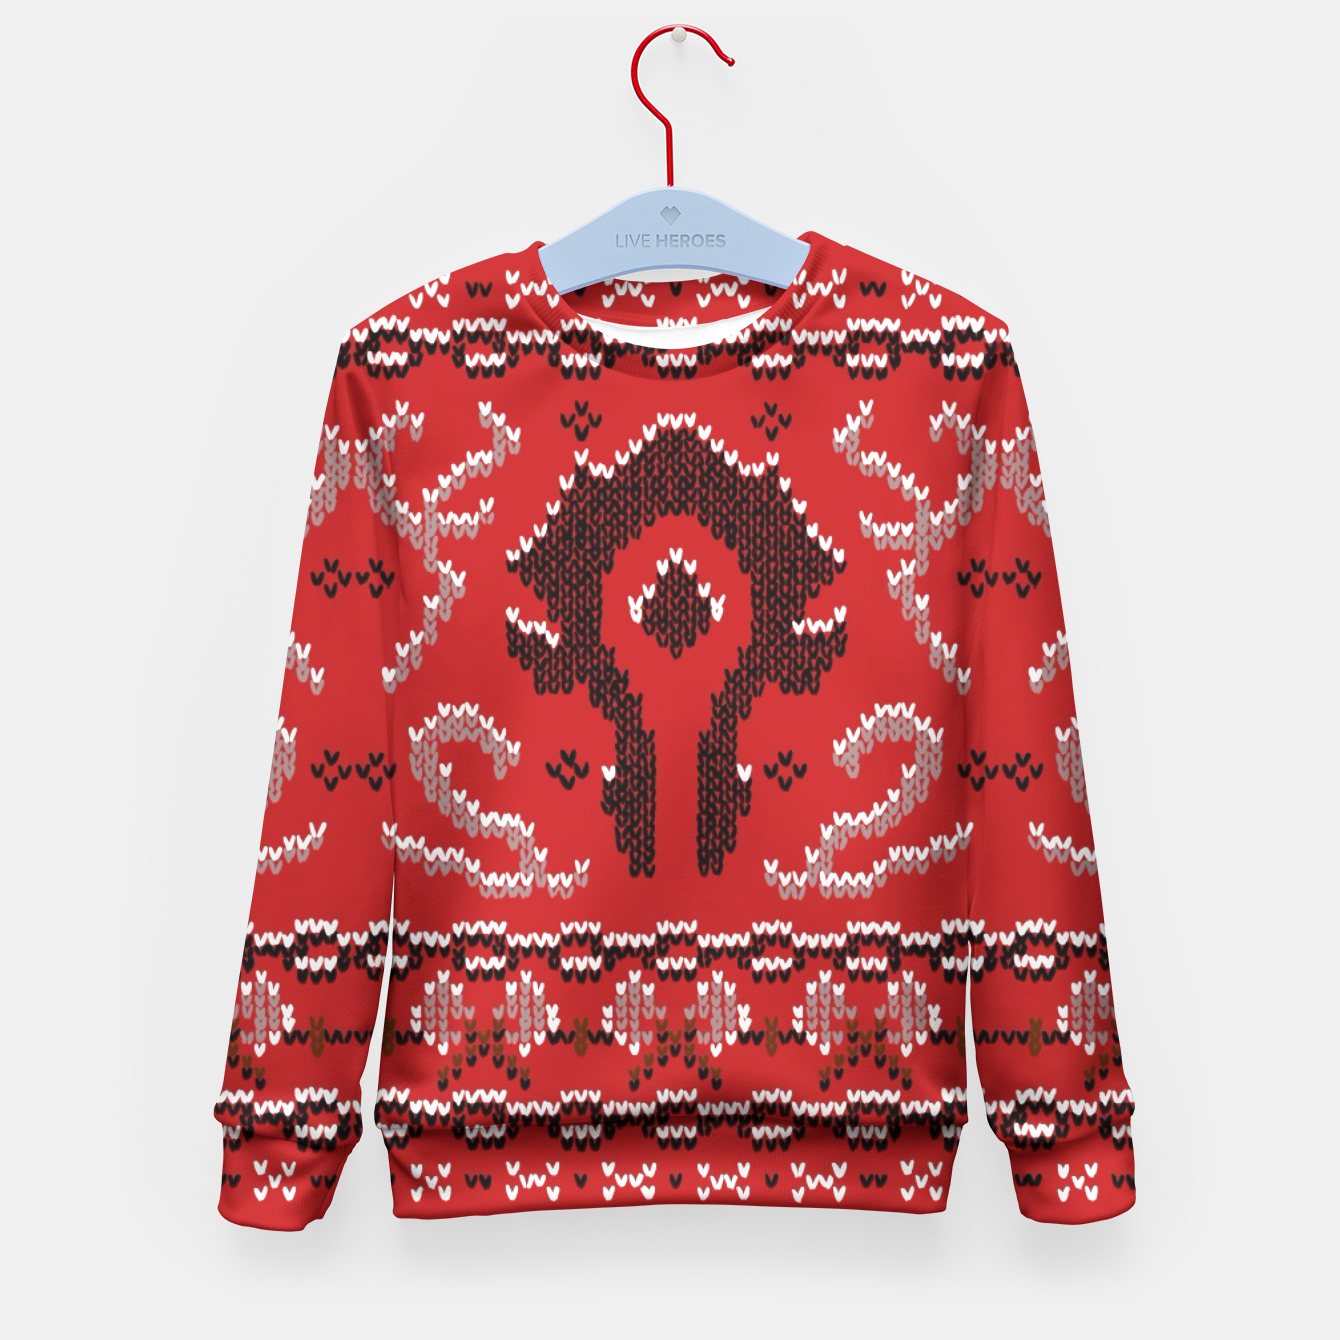 Horde Ugly Sweater Kid S Sweater Live Heroes